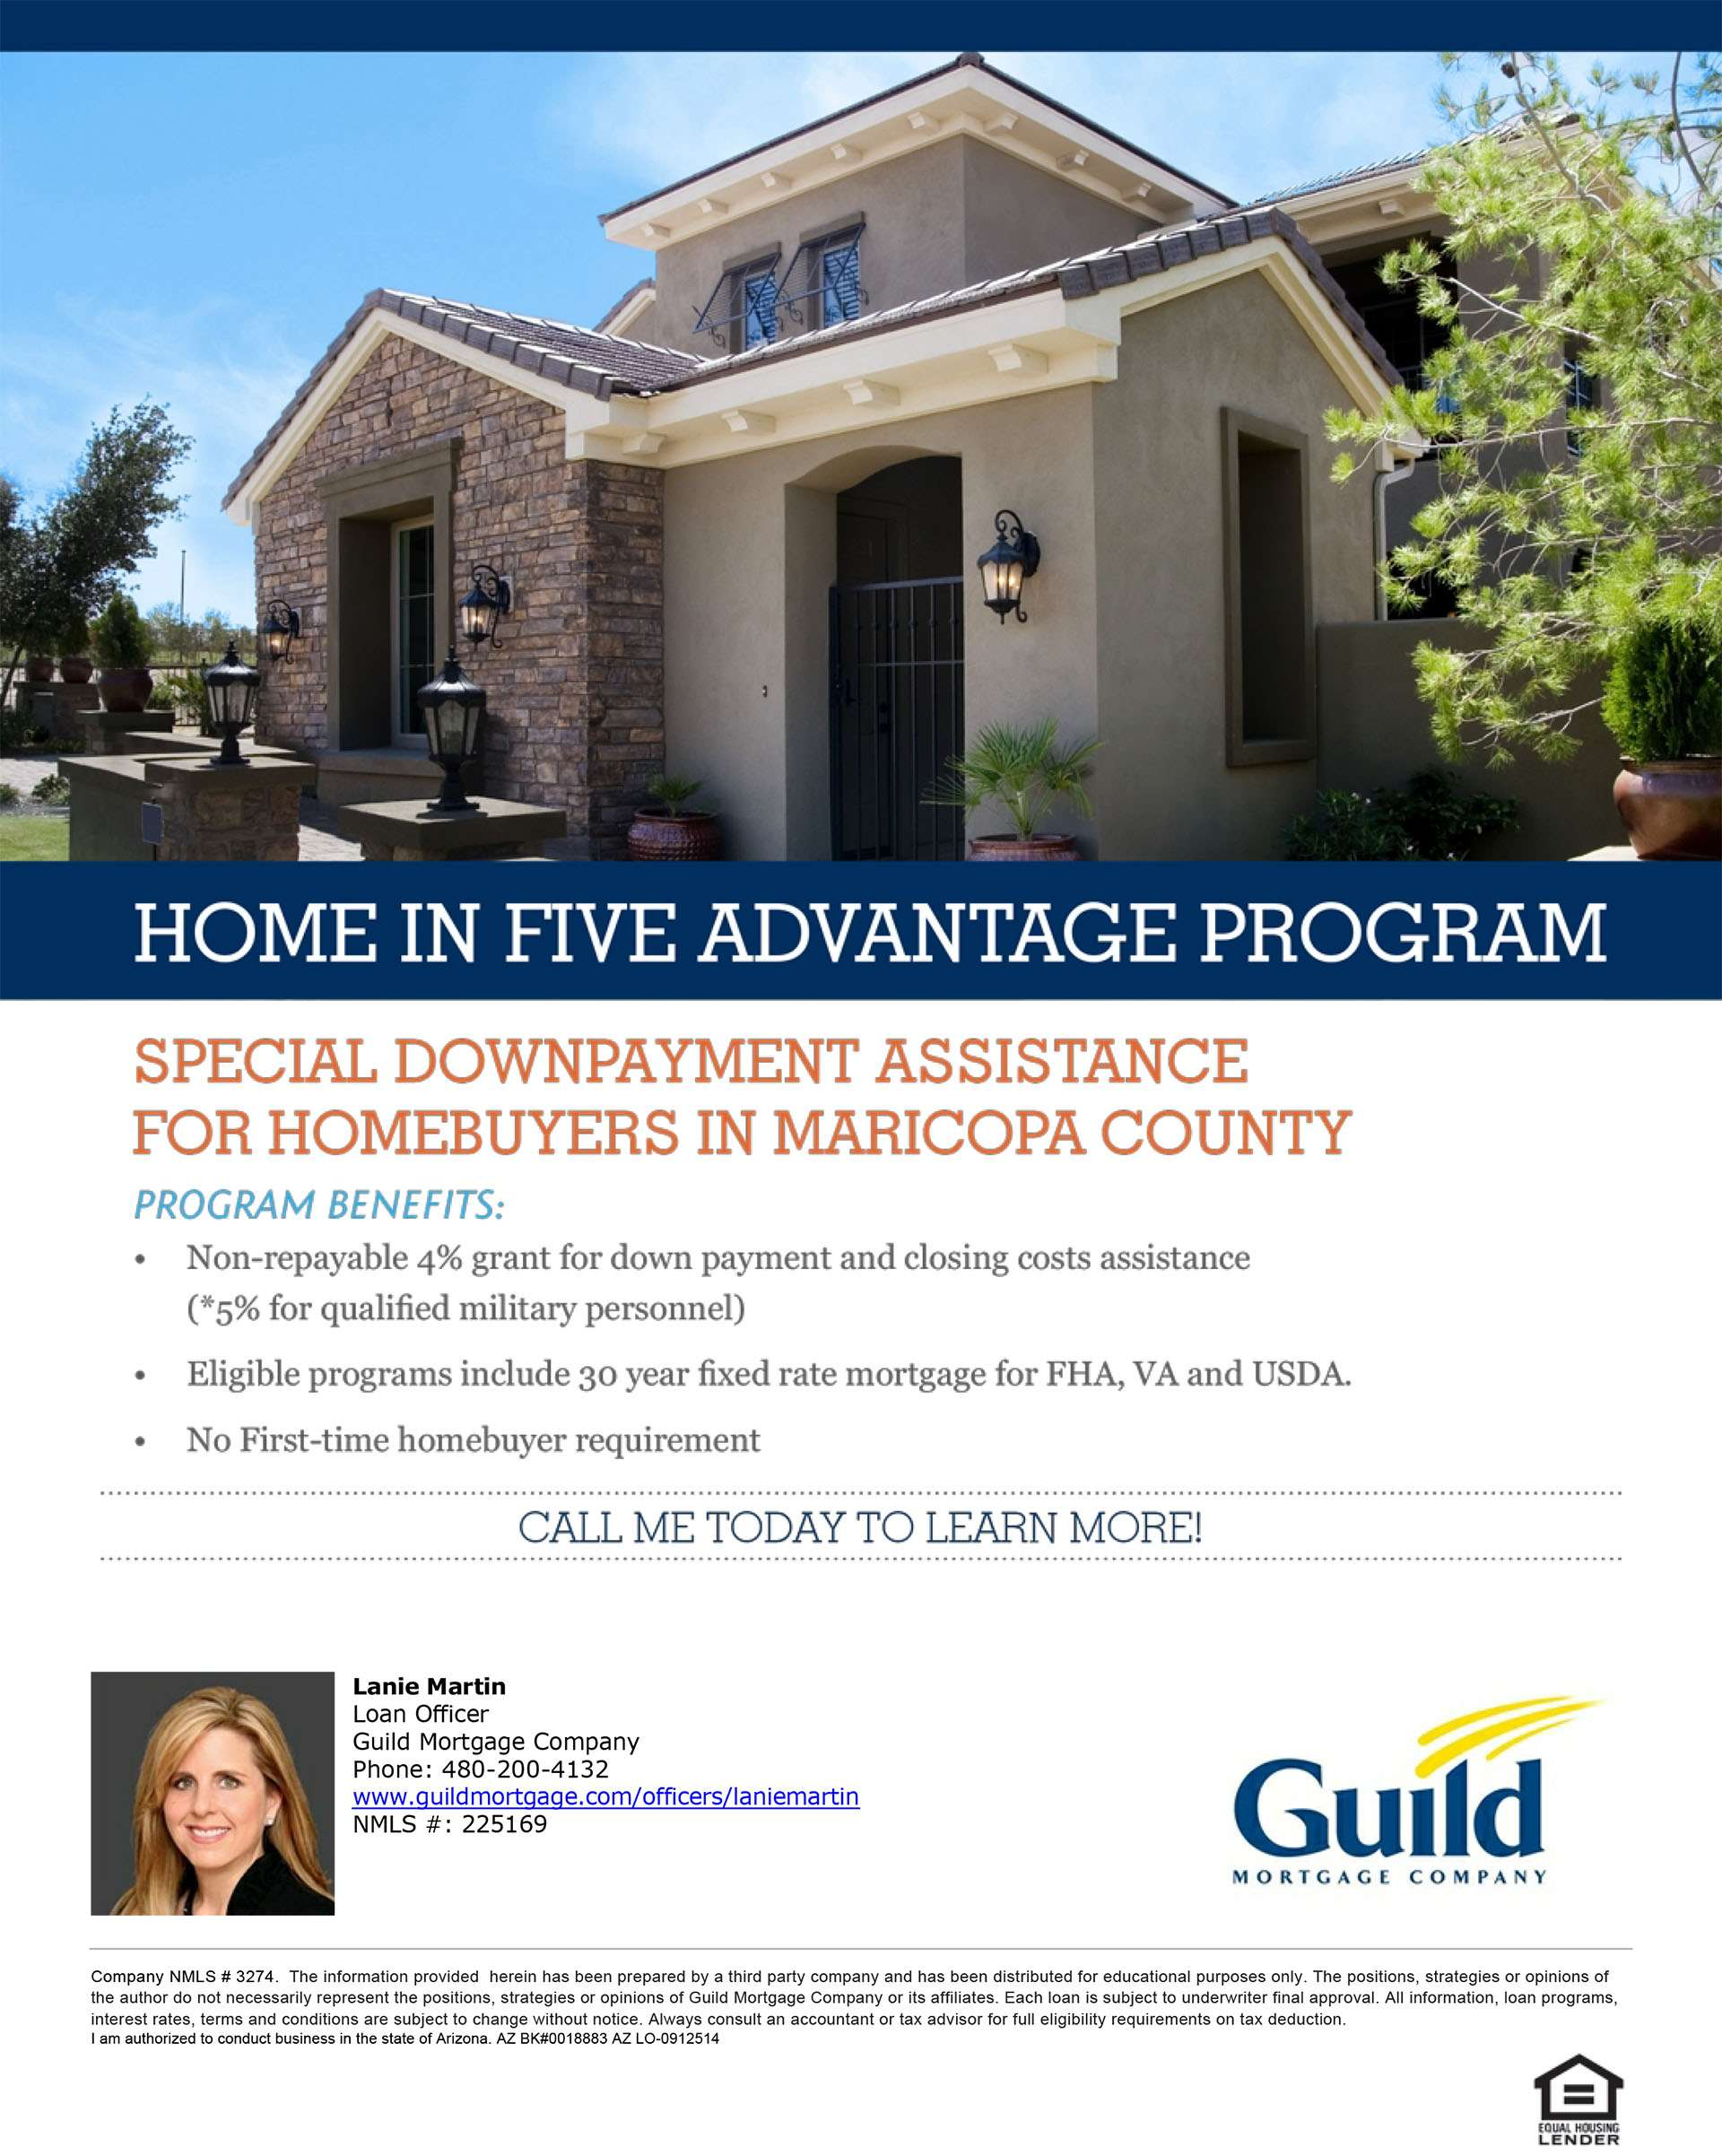 Guild Home in 5 Flyer